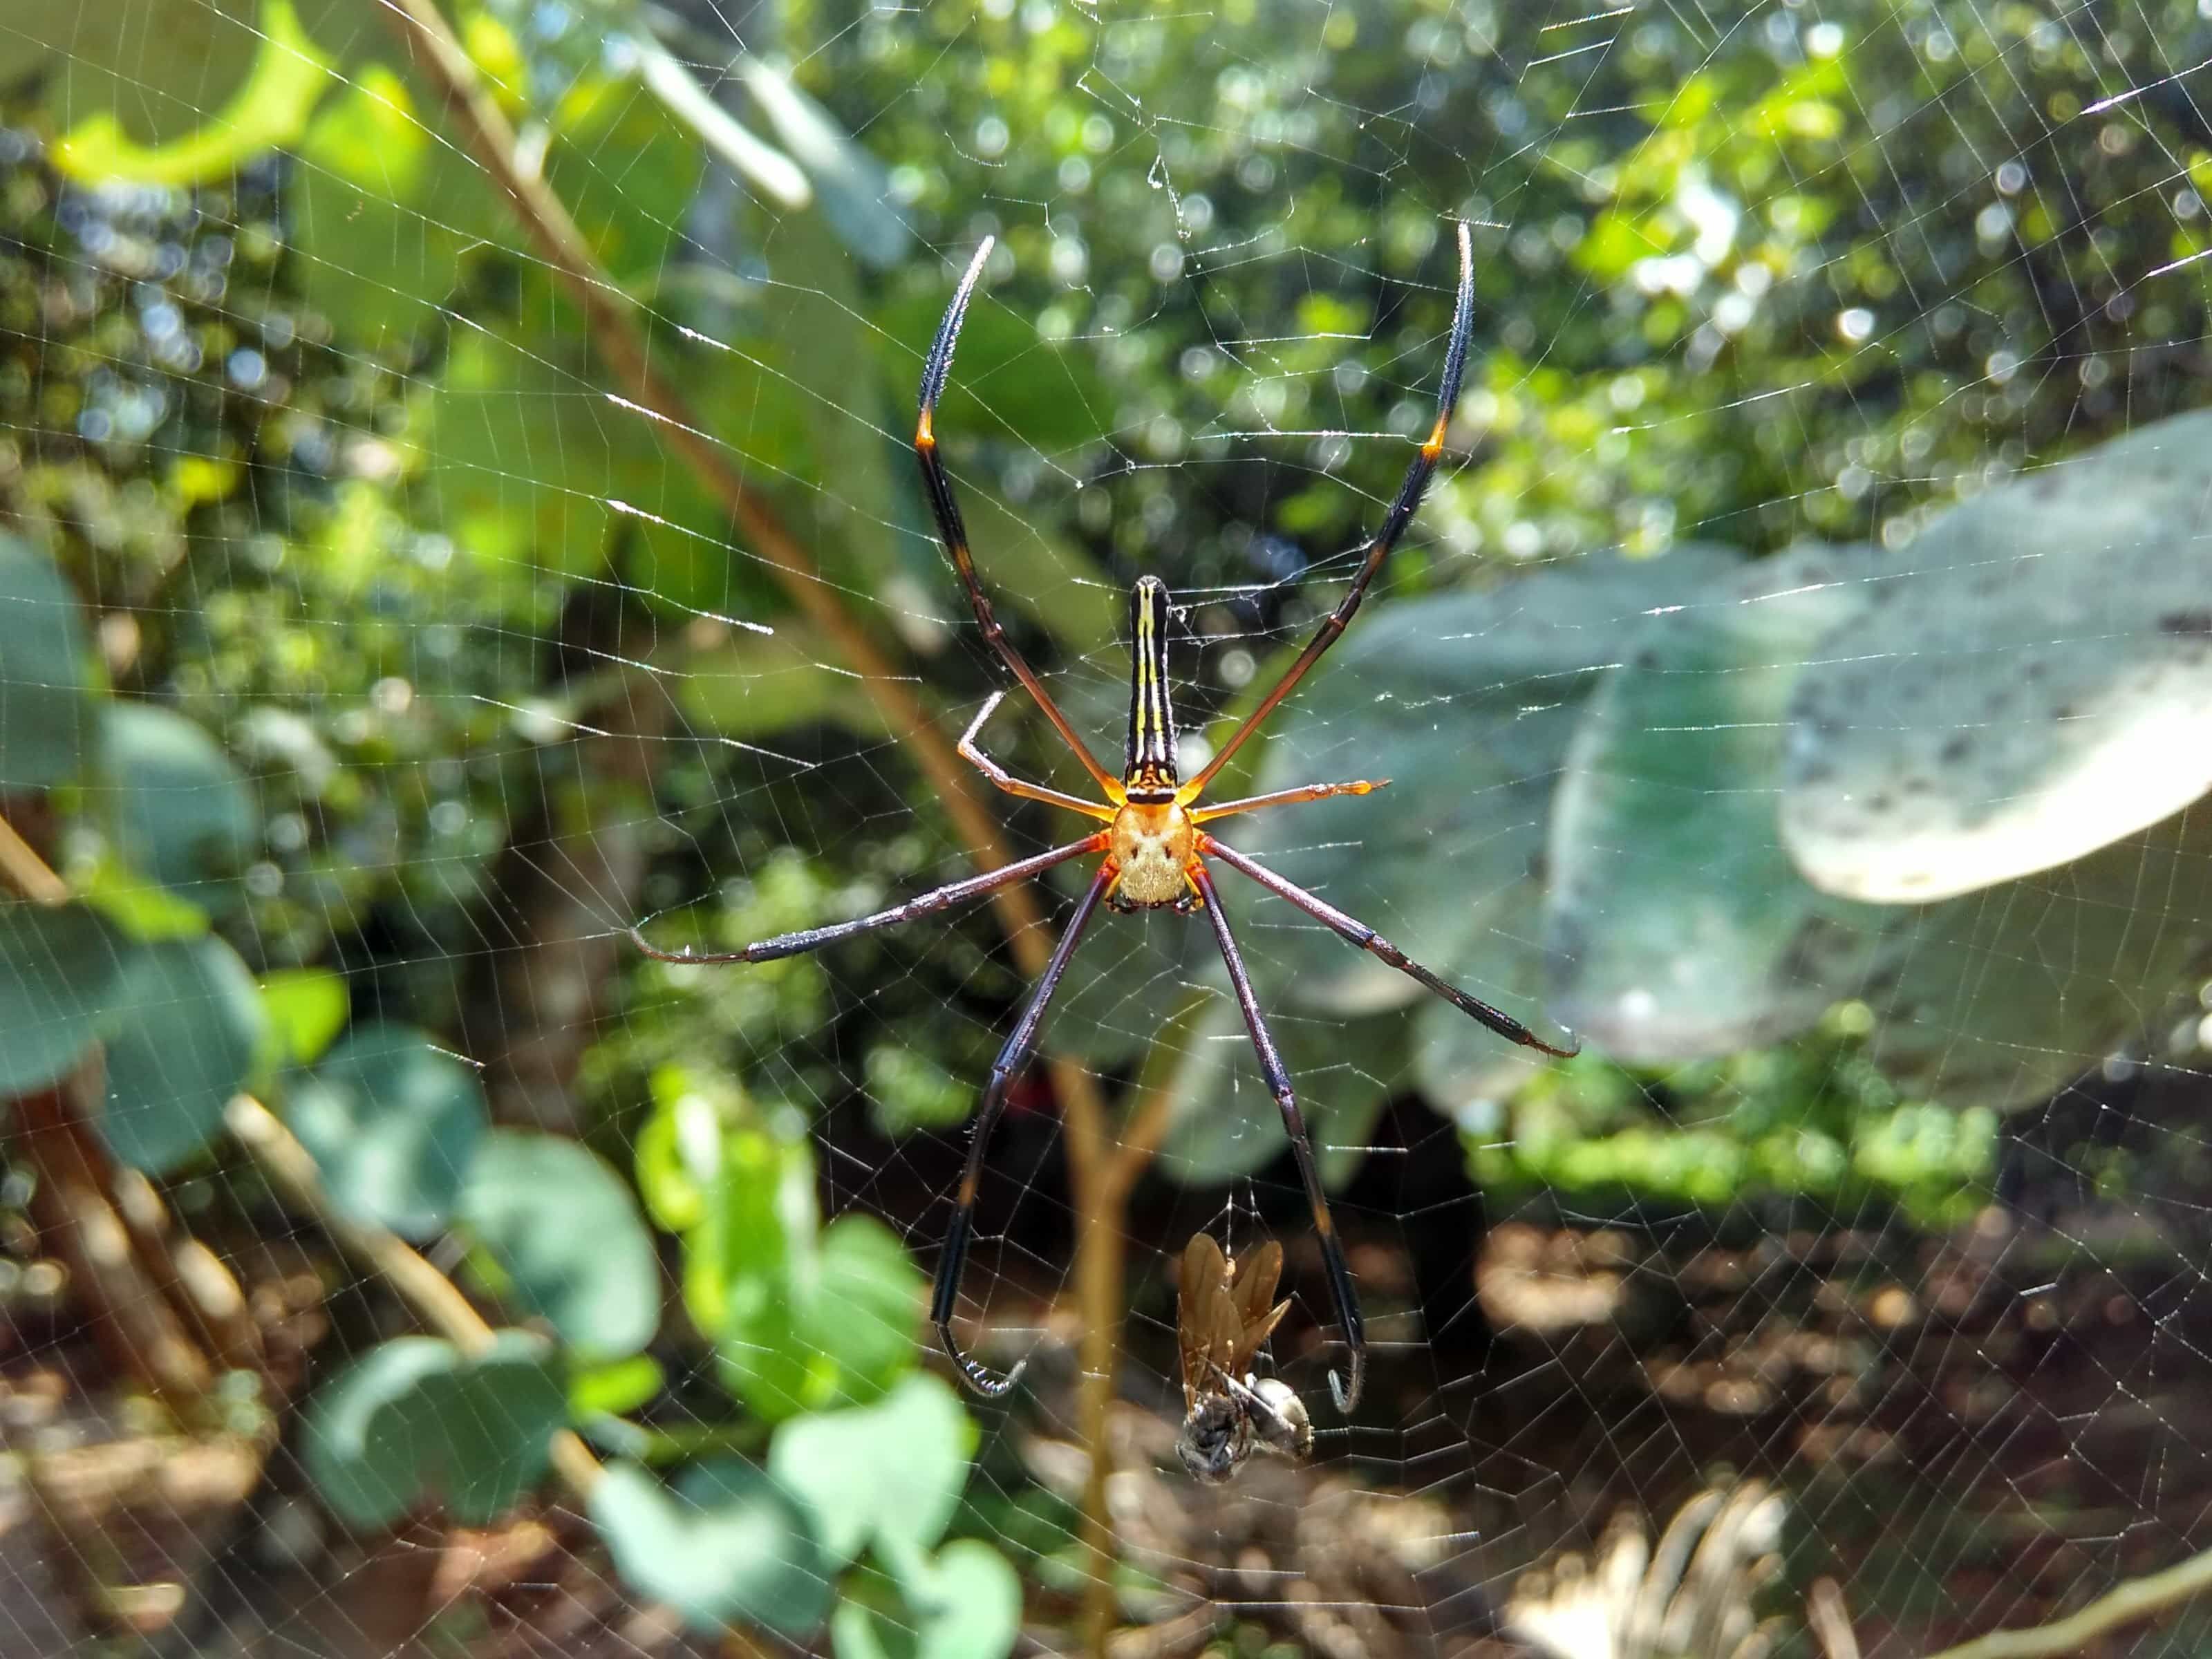 Picture of Nephila pilipes (Giant Golden Orb-weaver) - Dorsal,Webs,Prey